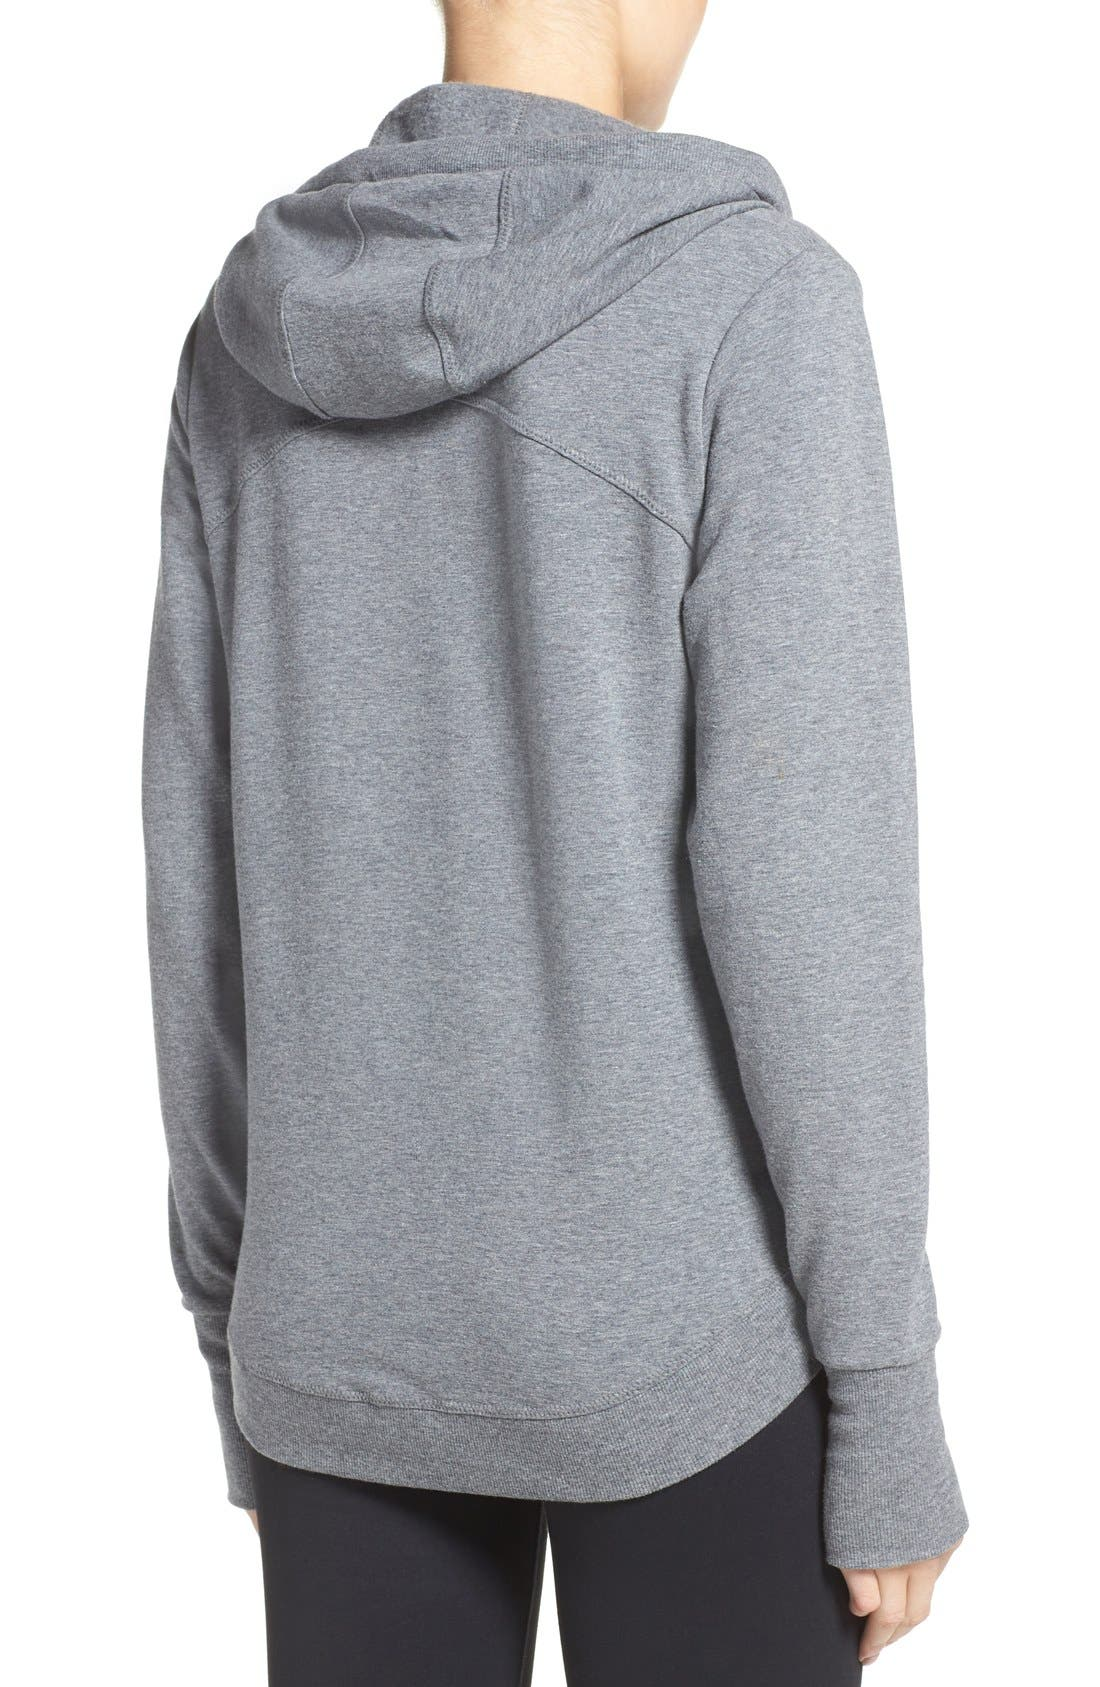 En Route Hoodie,                             Alternate thumbnail 2, color,                             Grey Dark Heather